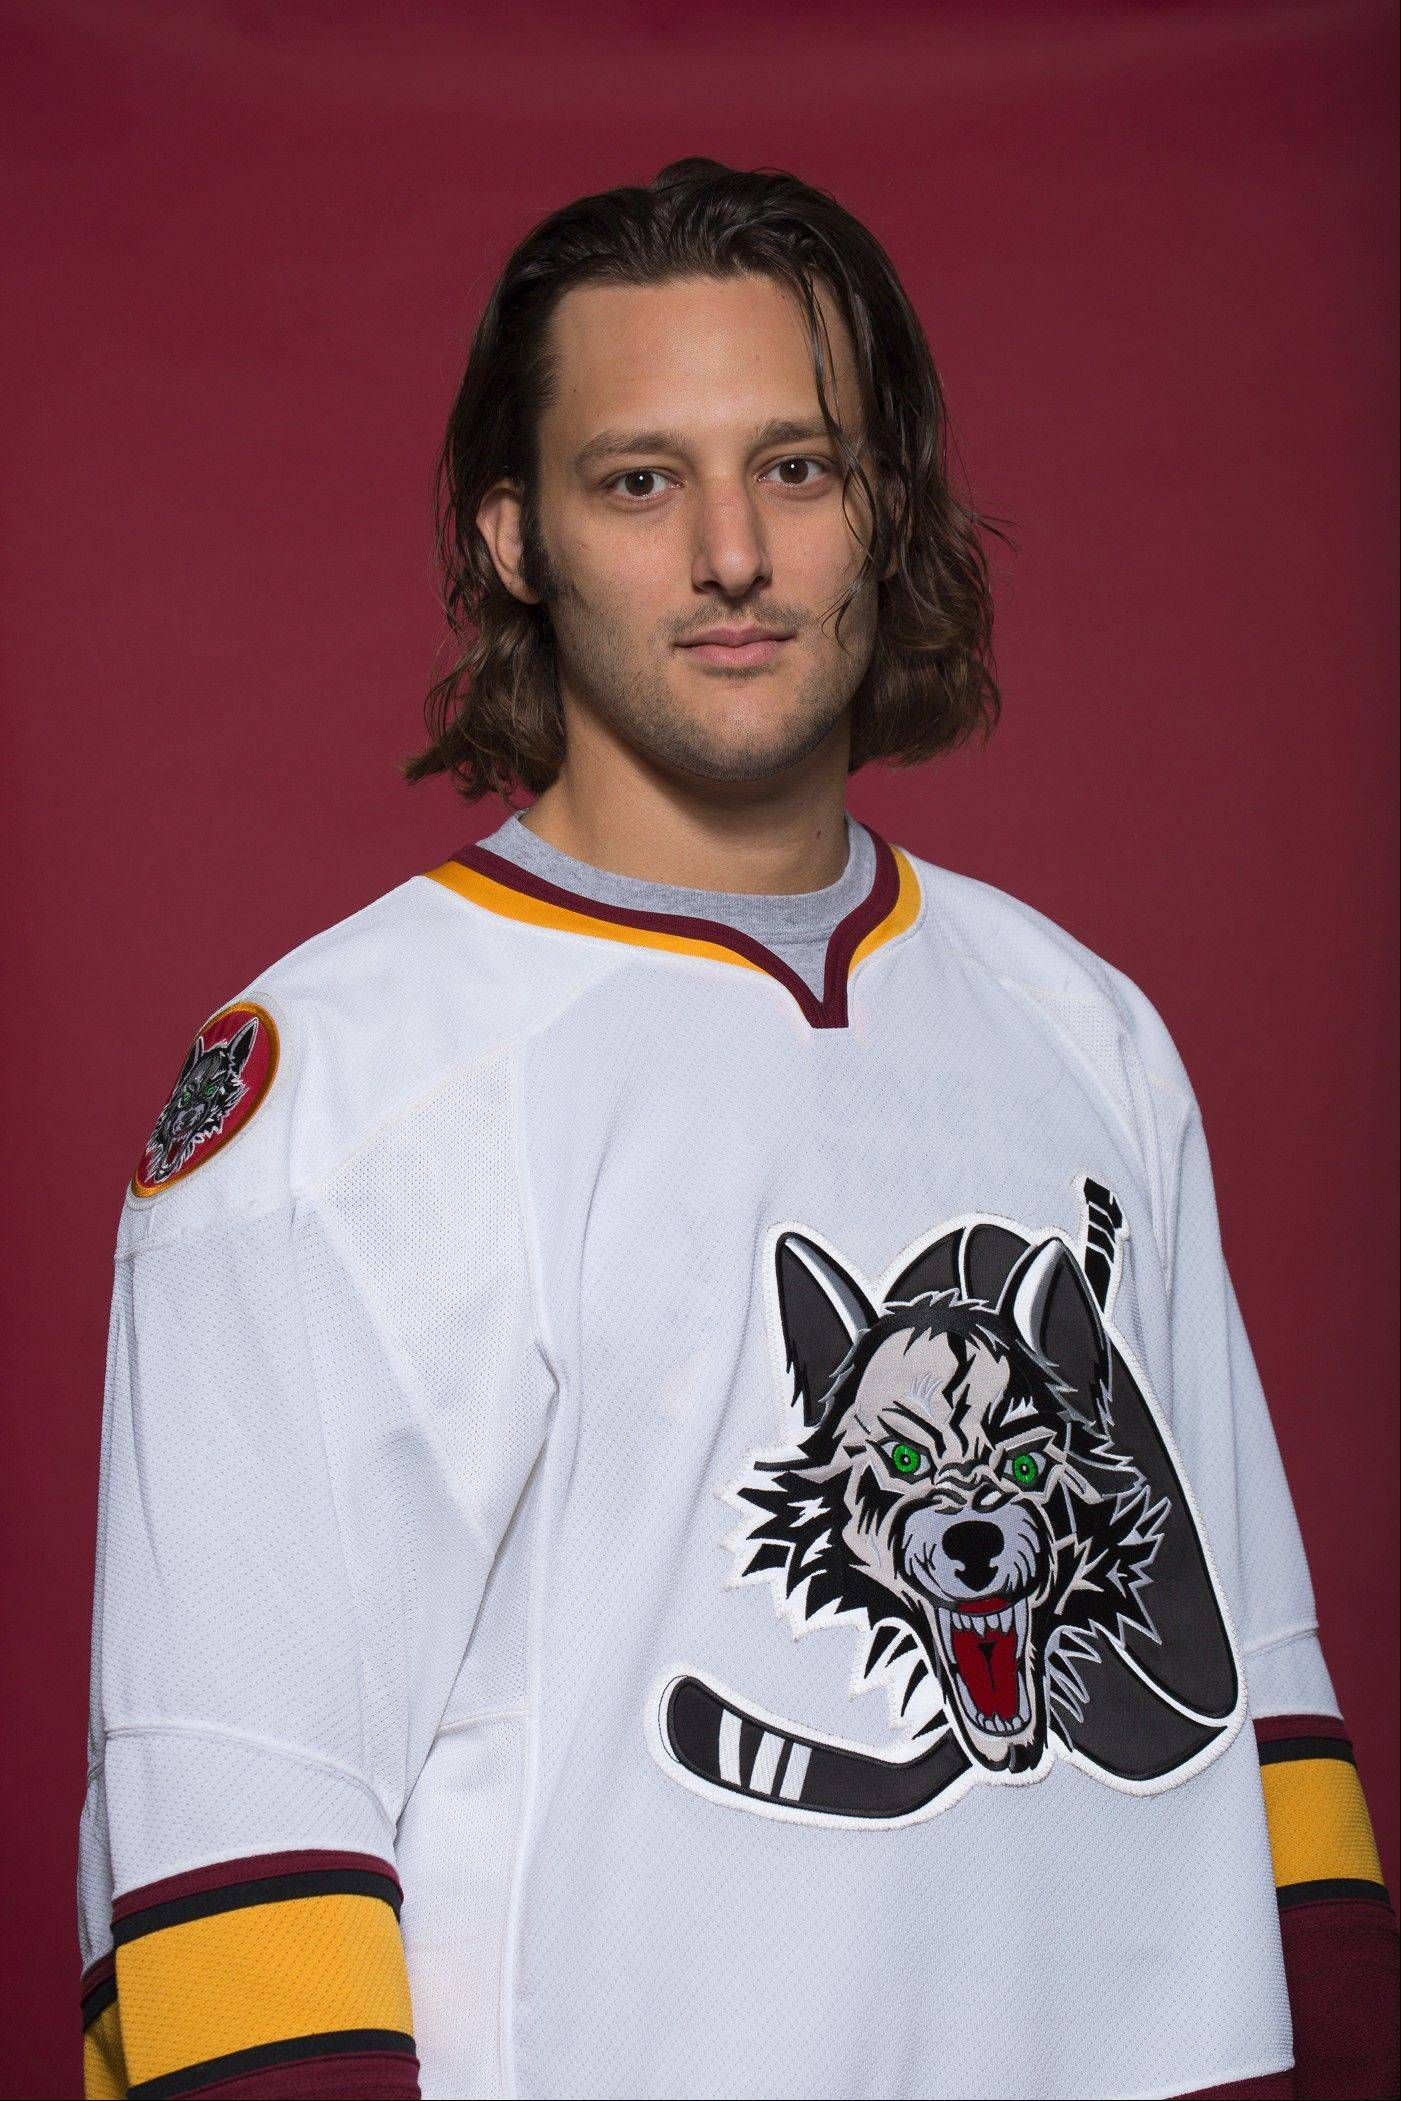 Chicago Wolves center Christian Hanson is allergic to peanuts and supports the team's Peanut Awareness Day games.